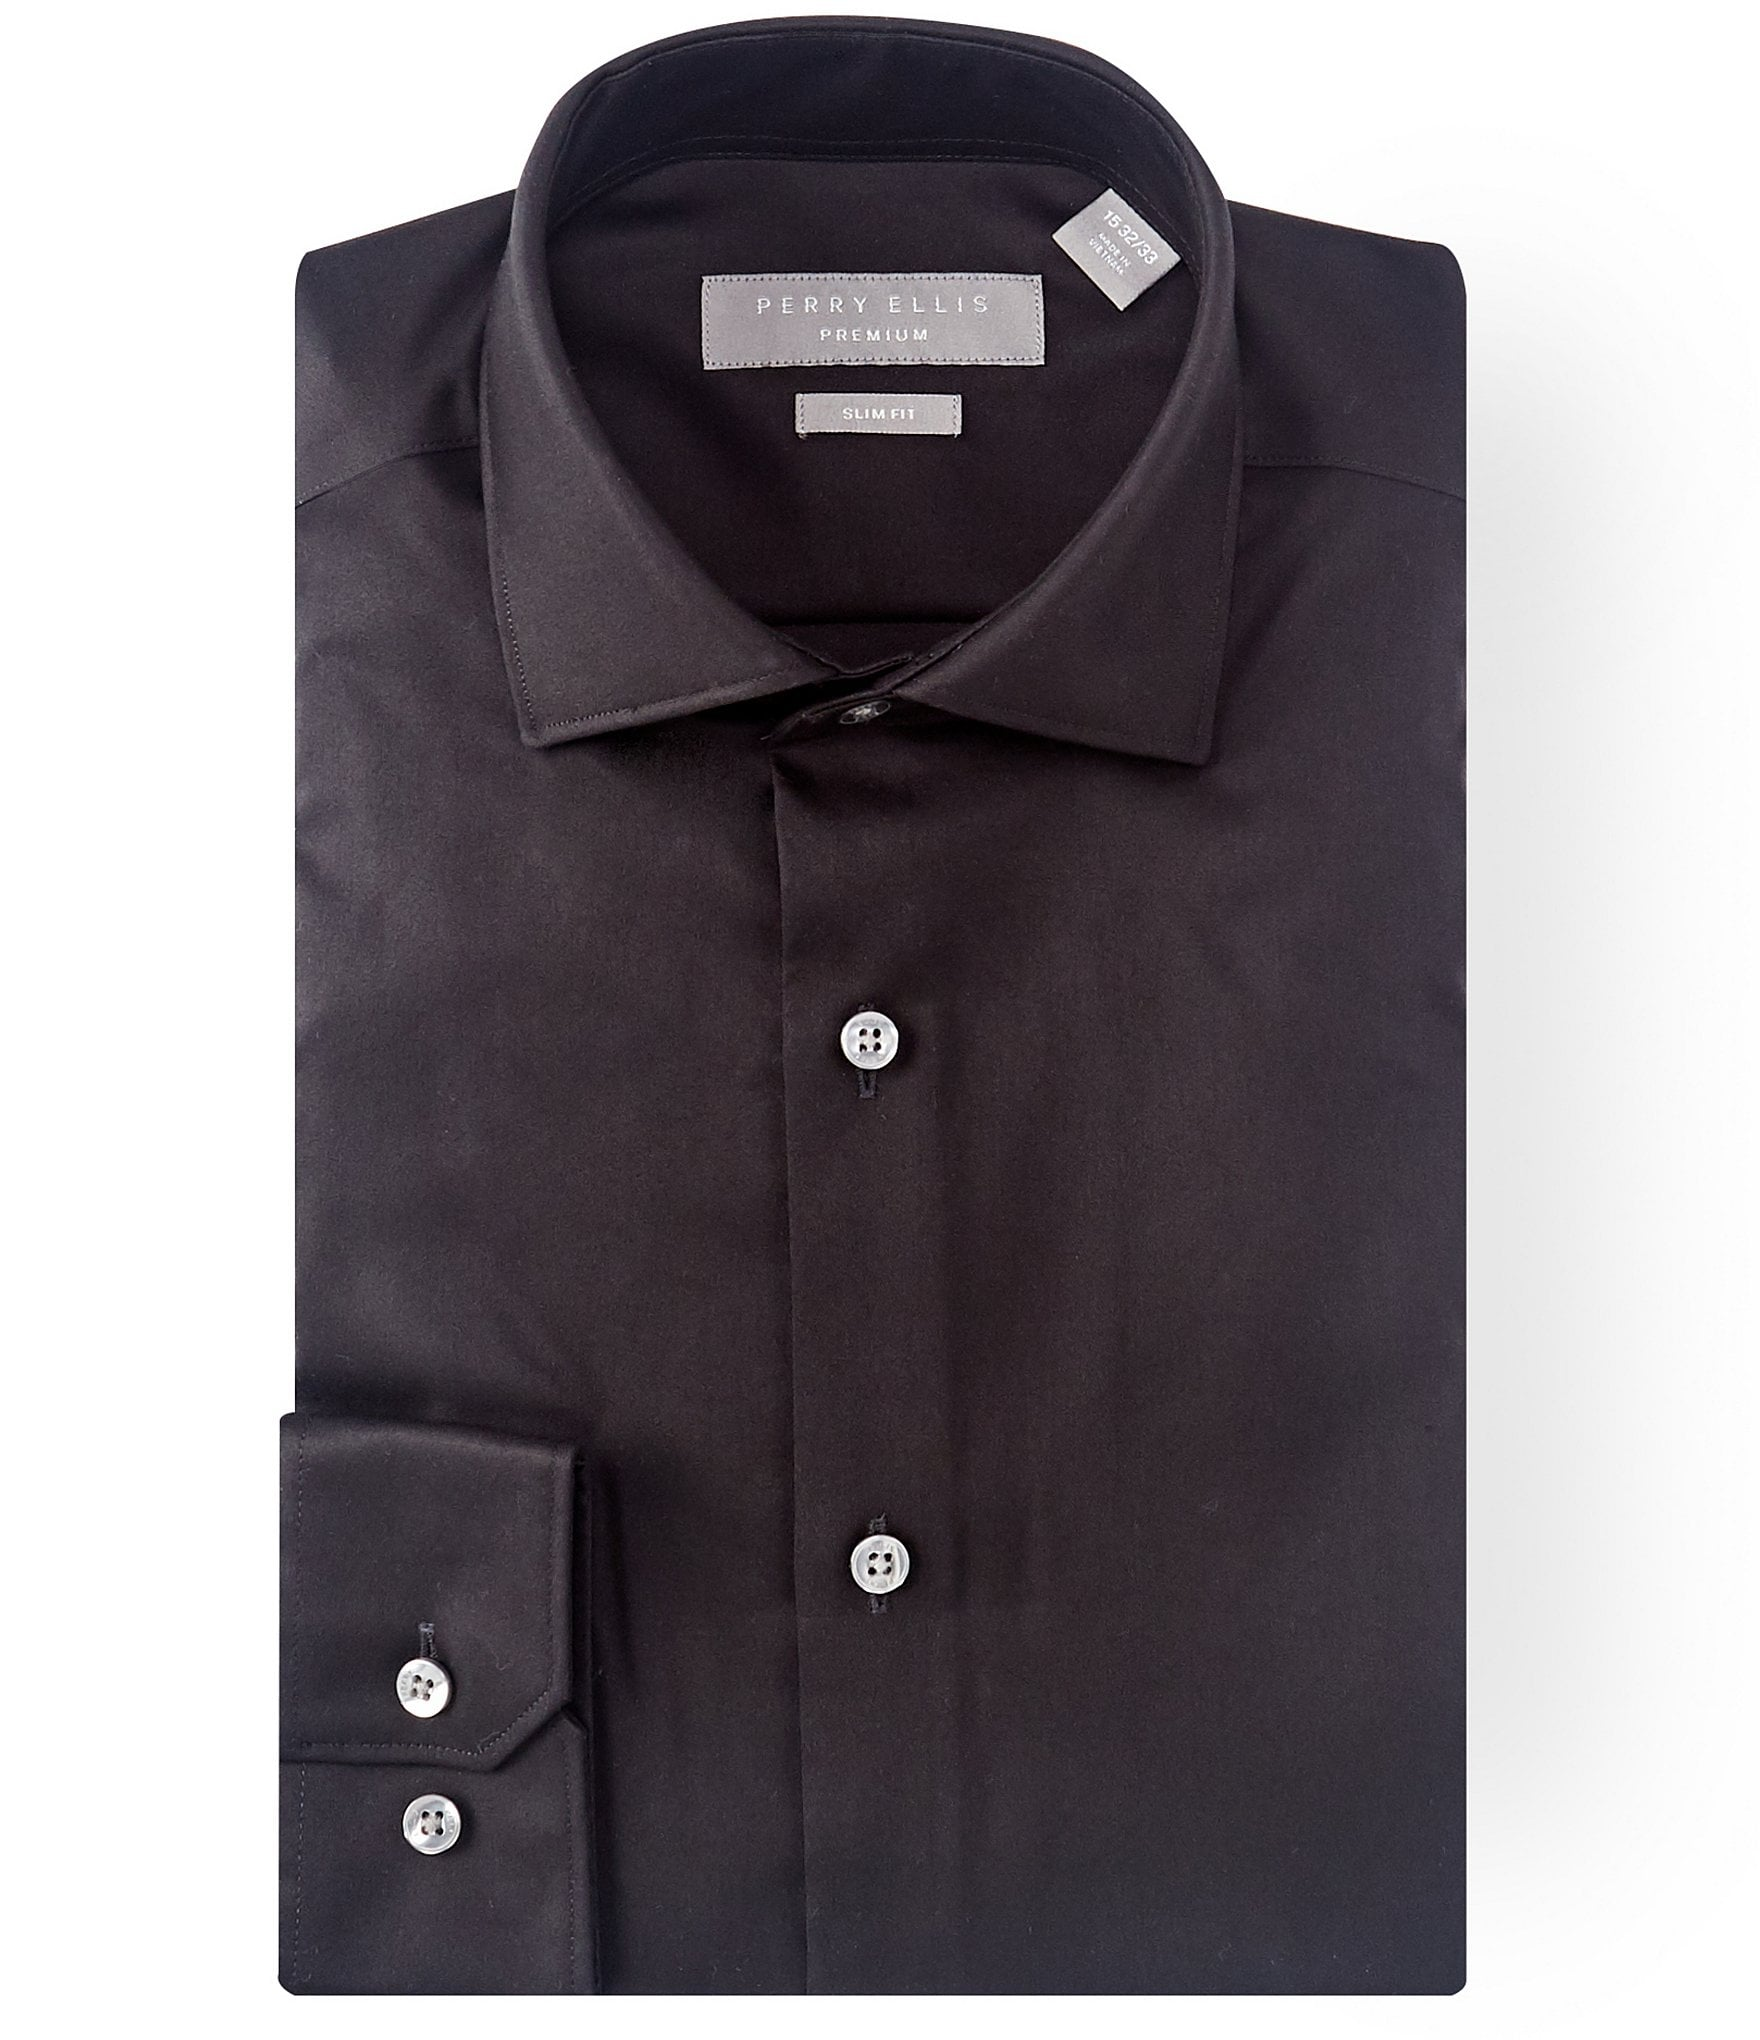 Perry ellis non iron slim fit spread collar solid twill for Slim fit non iron dress shirts